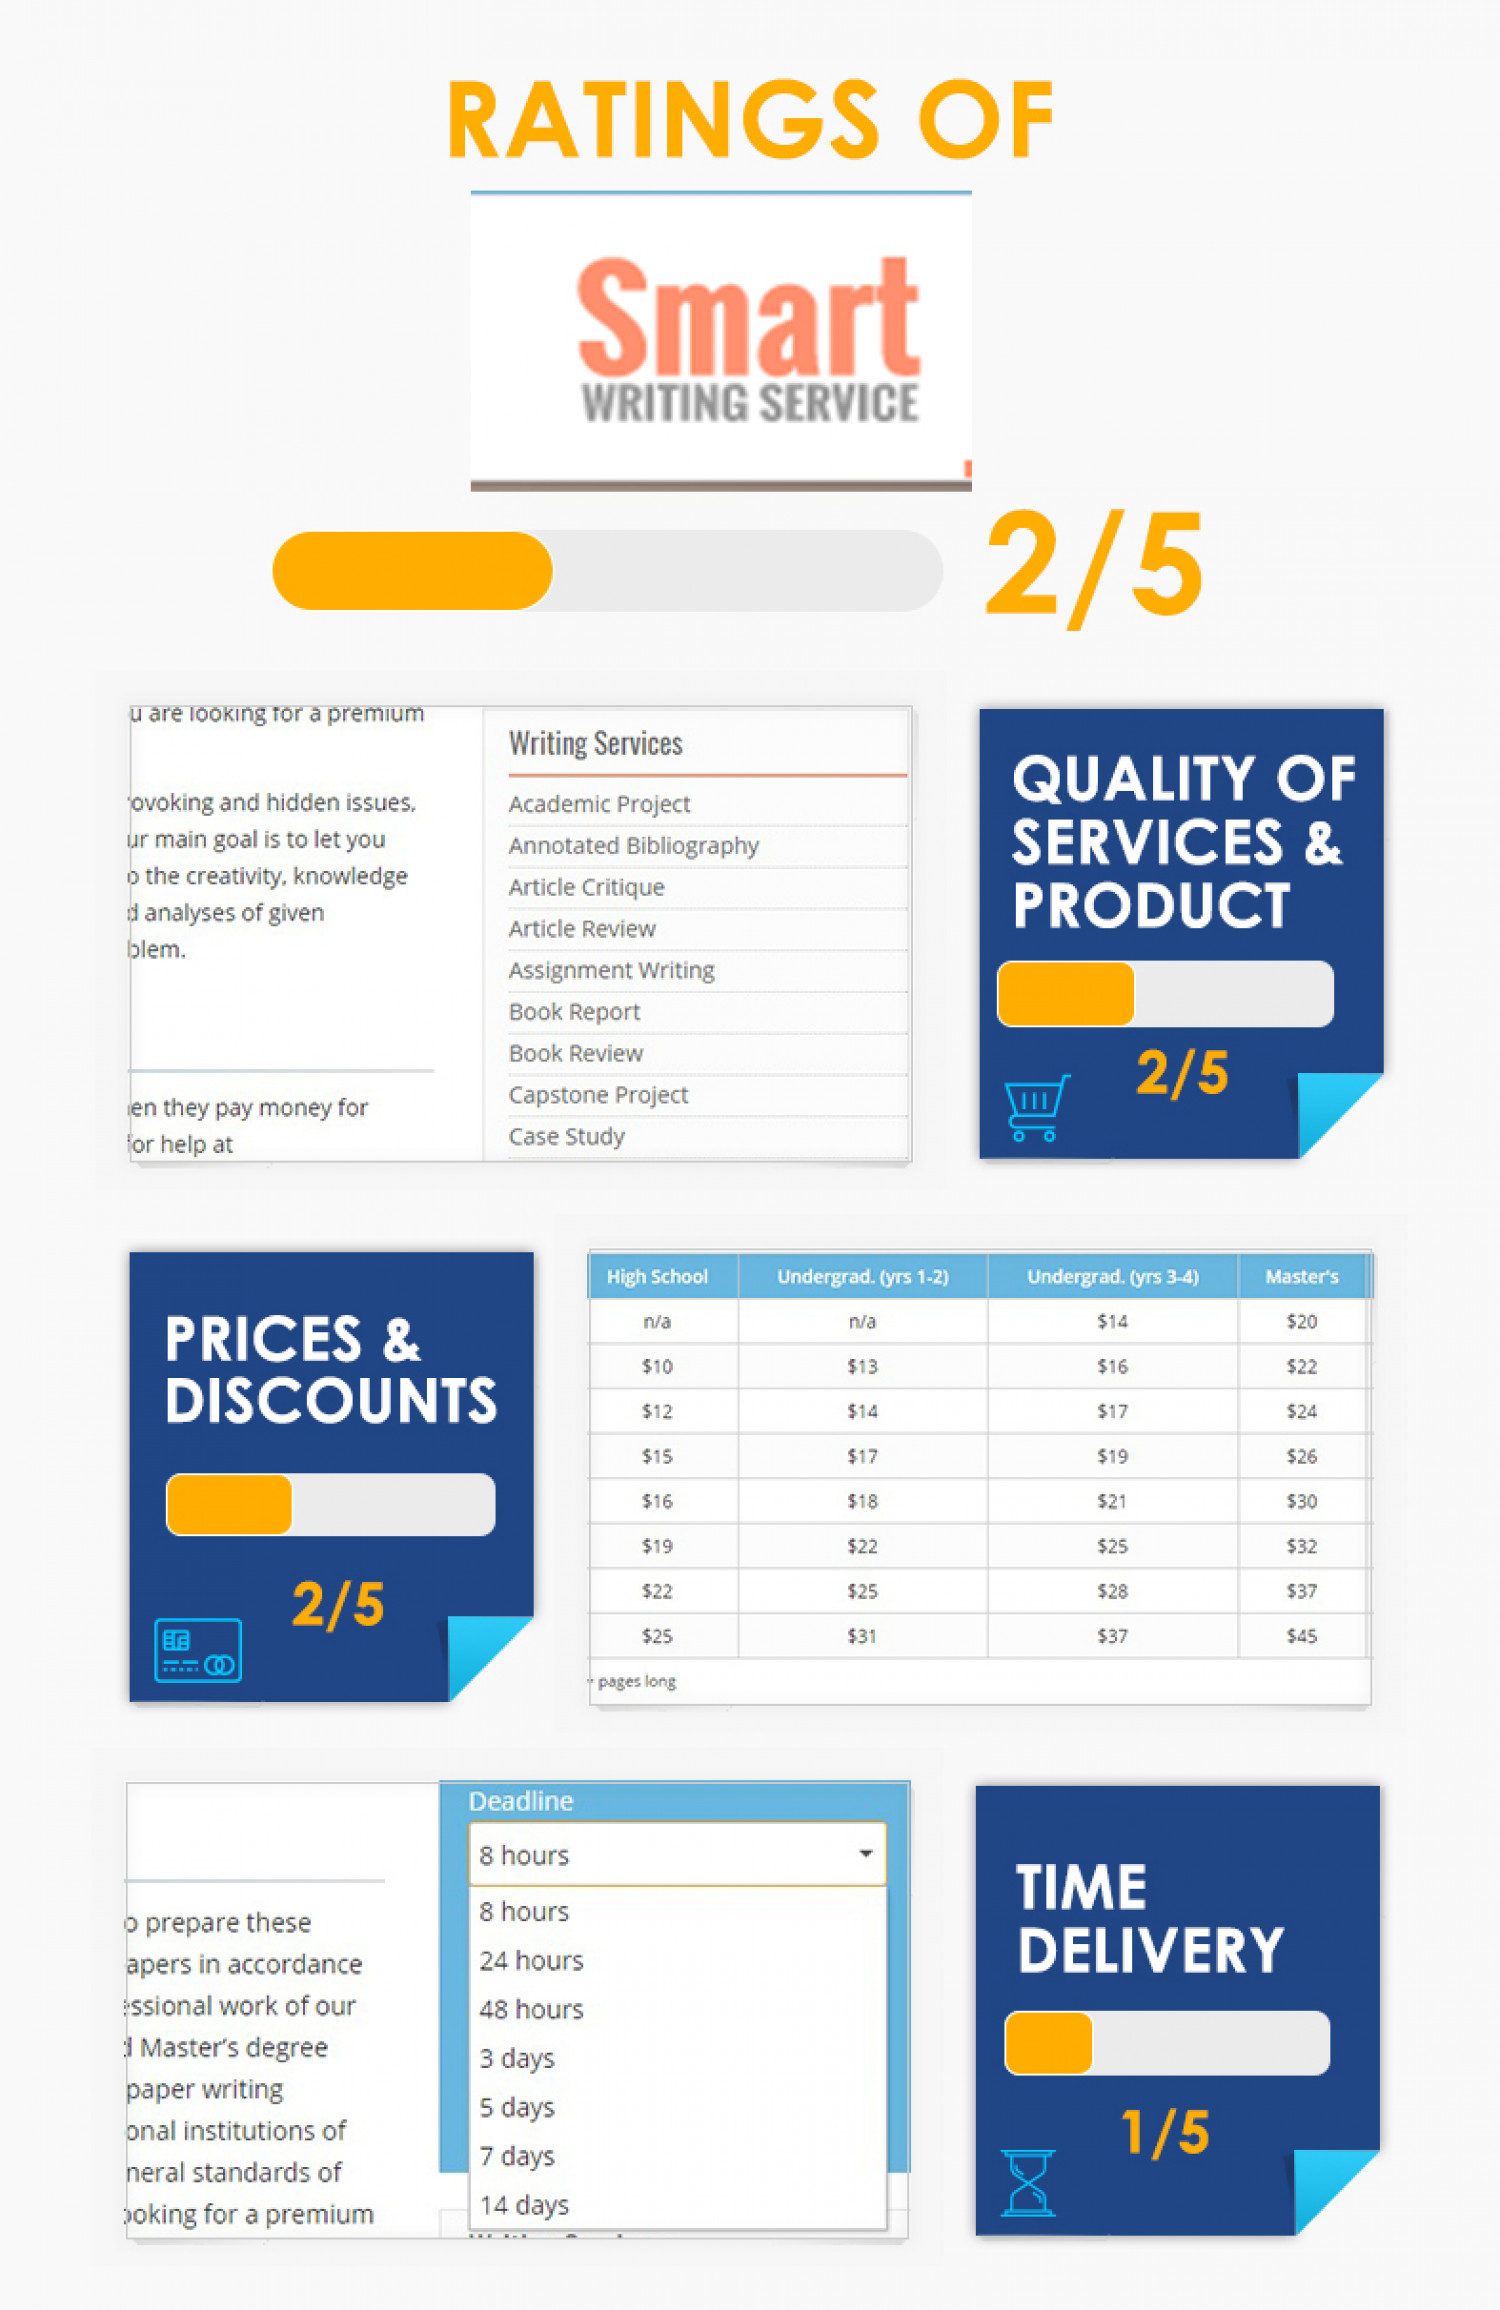 Do You Need Some Coupons At Legit Writing Service Like SmartWritingService? Check Them Here! Infographic